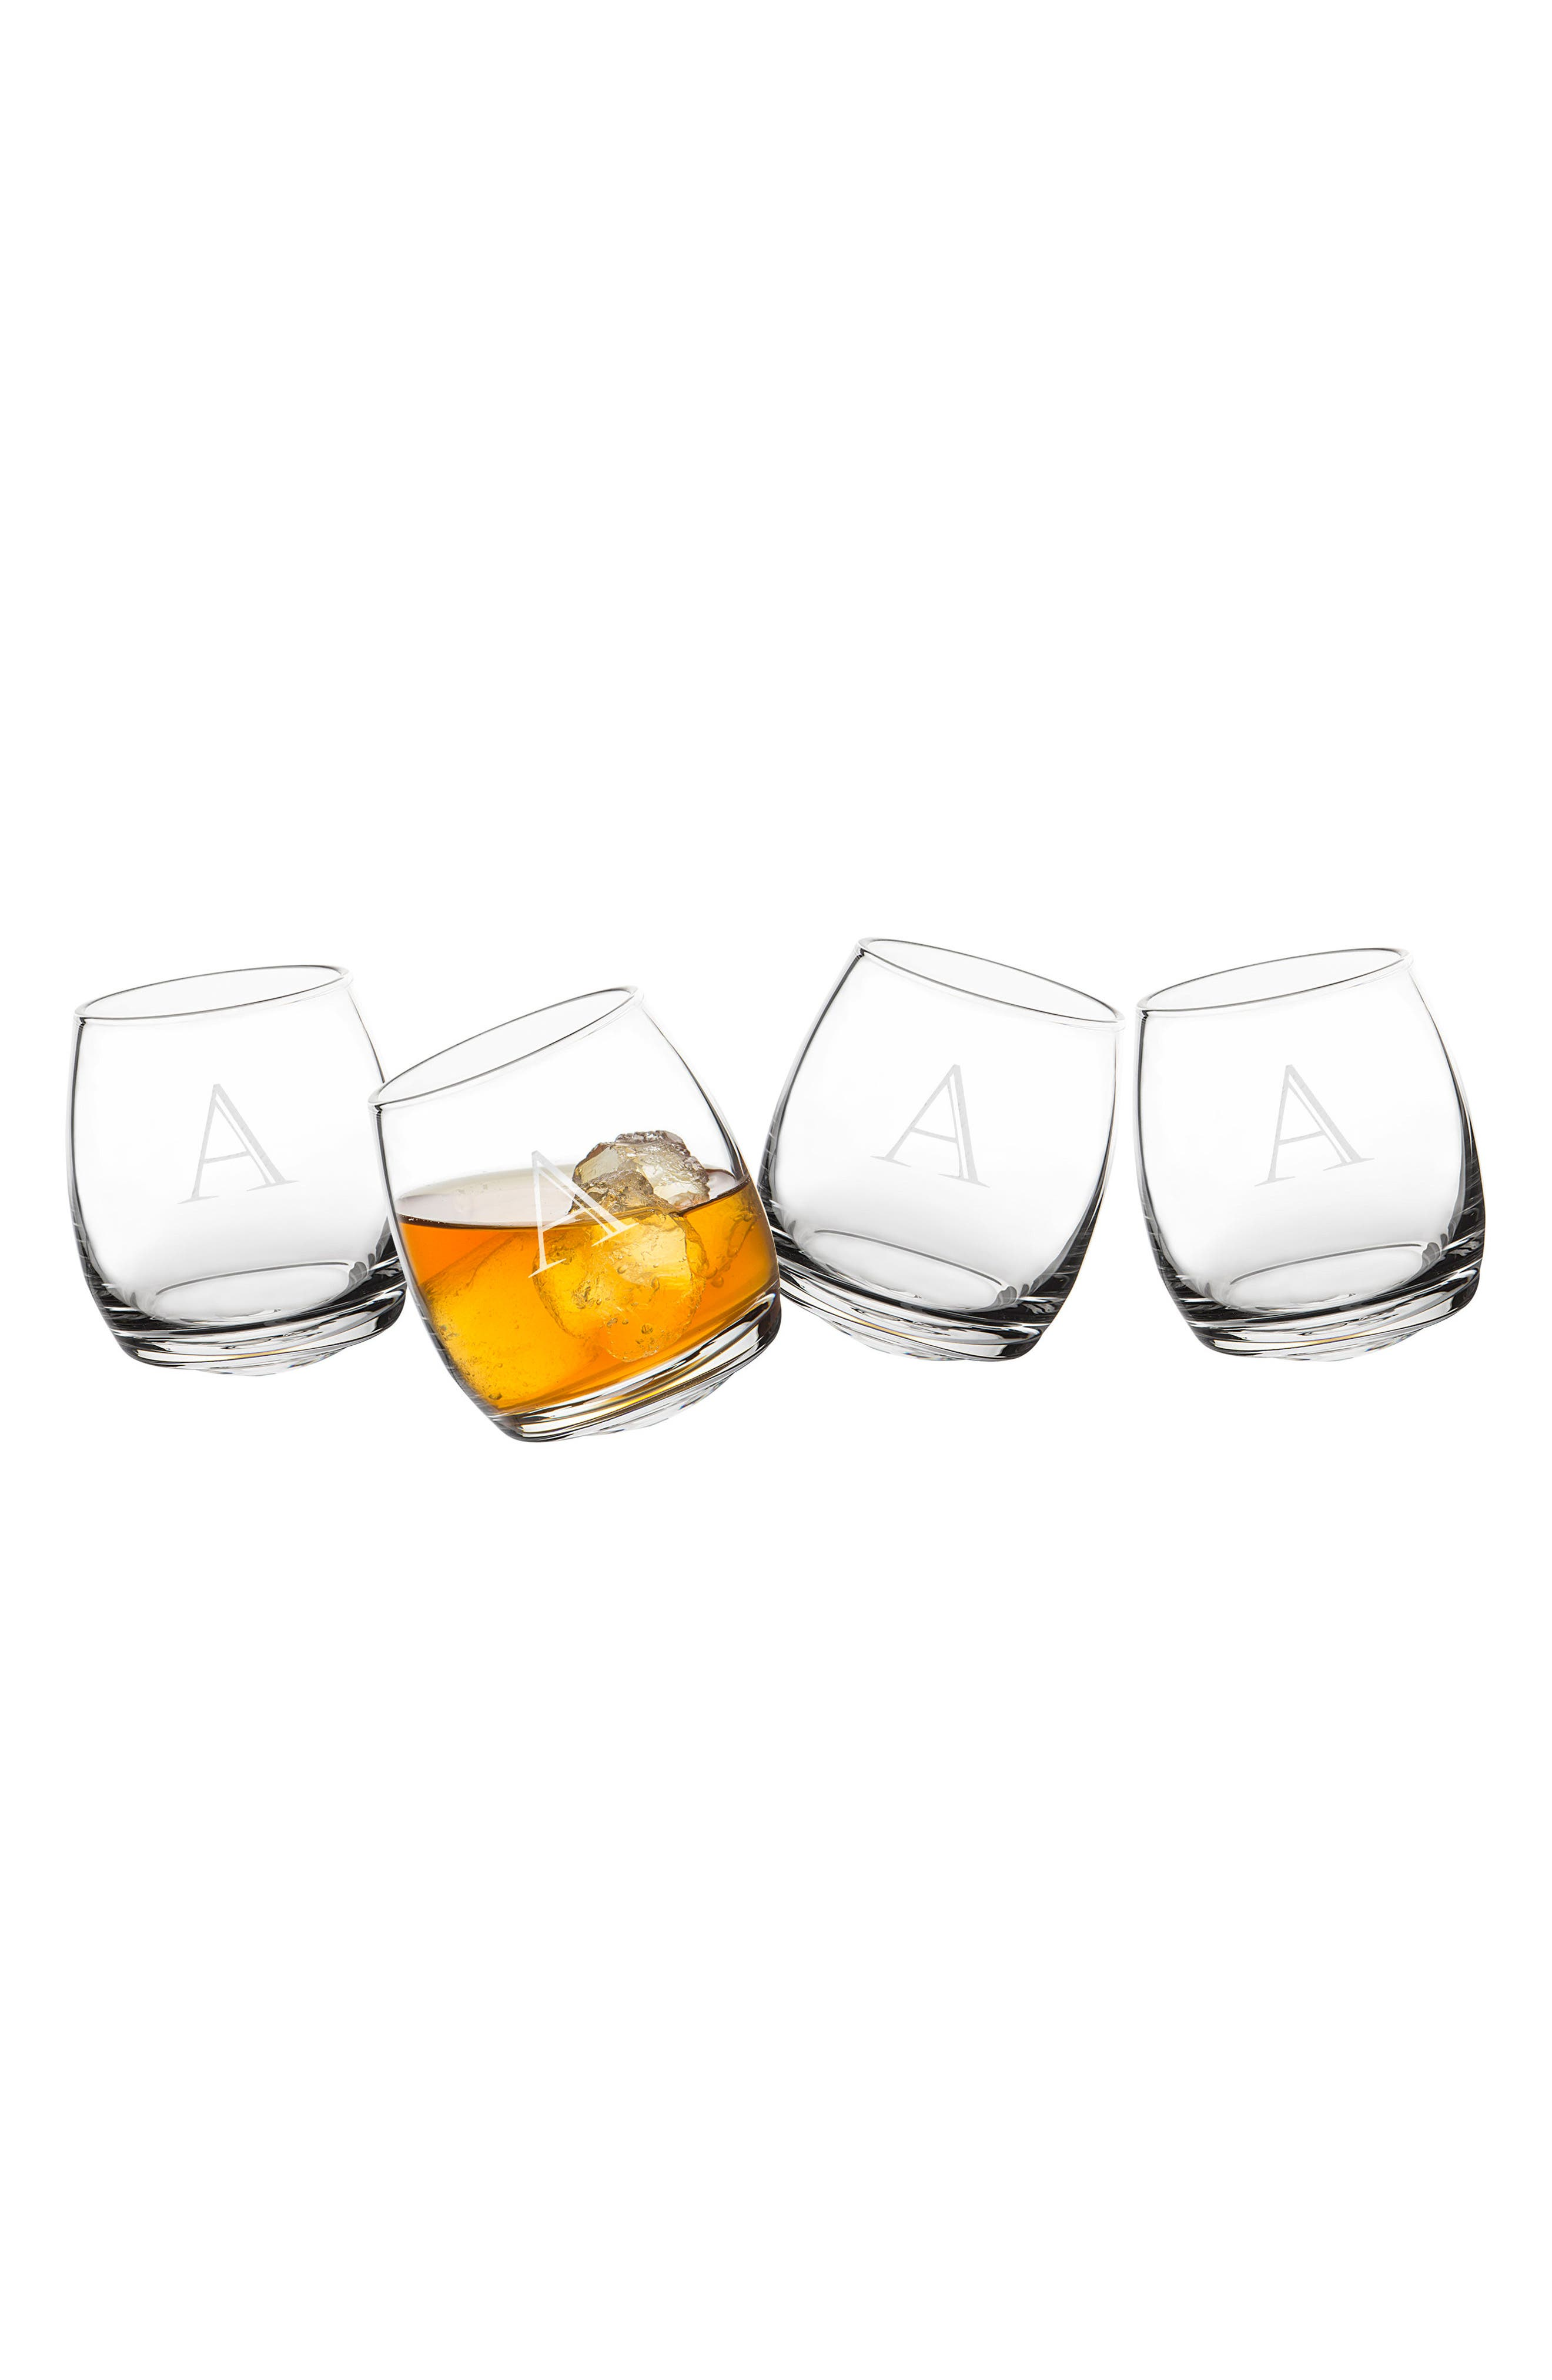 Monogram Tipsy Set of 4 Double Old Fashioned Glasses,                         Main,                         color, White - A